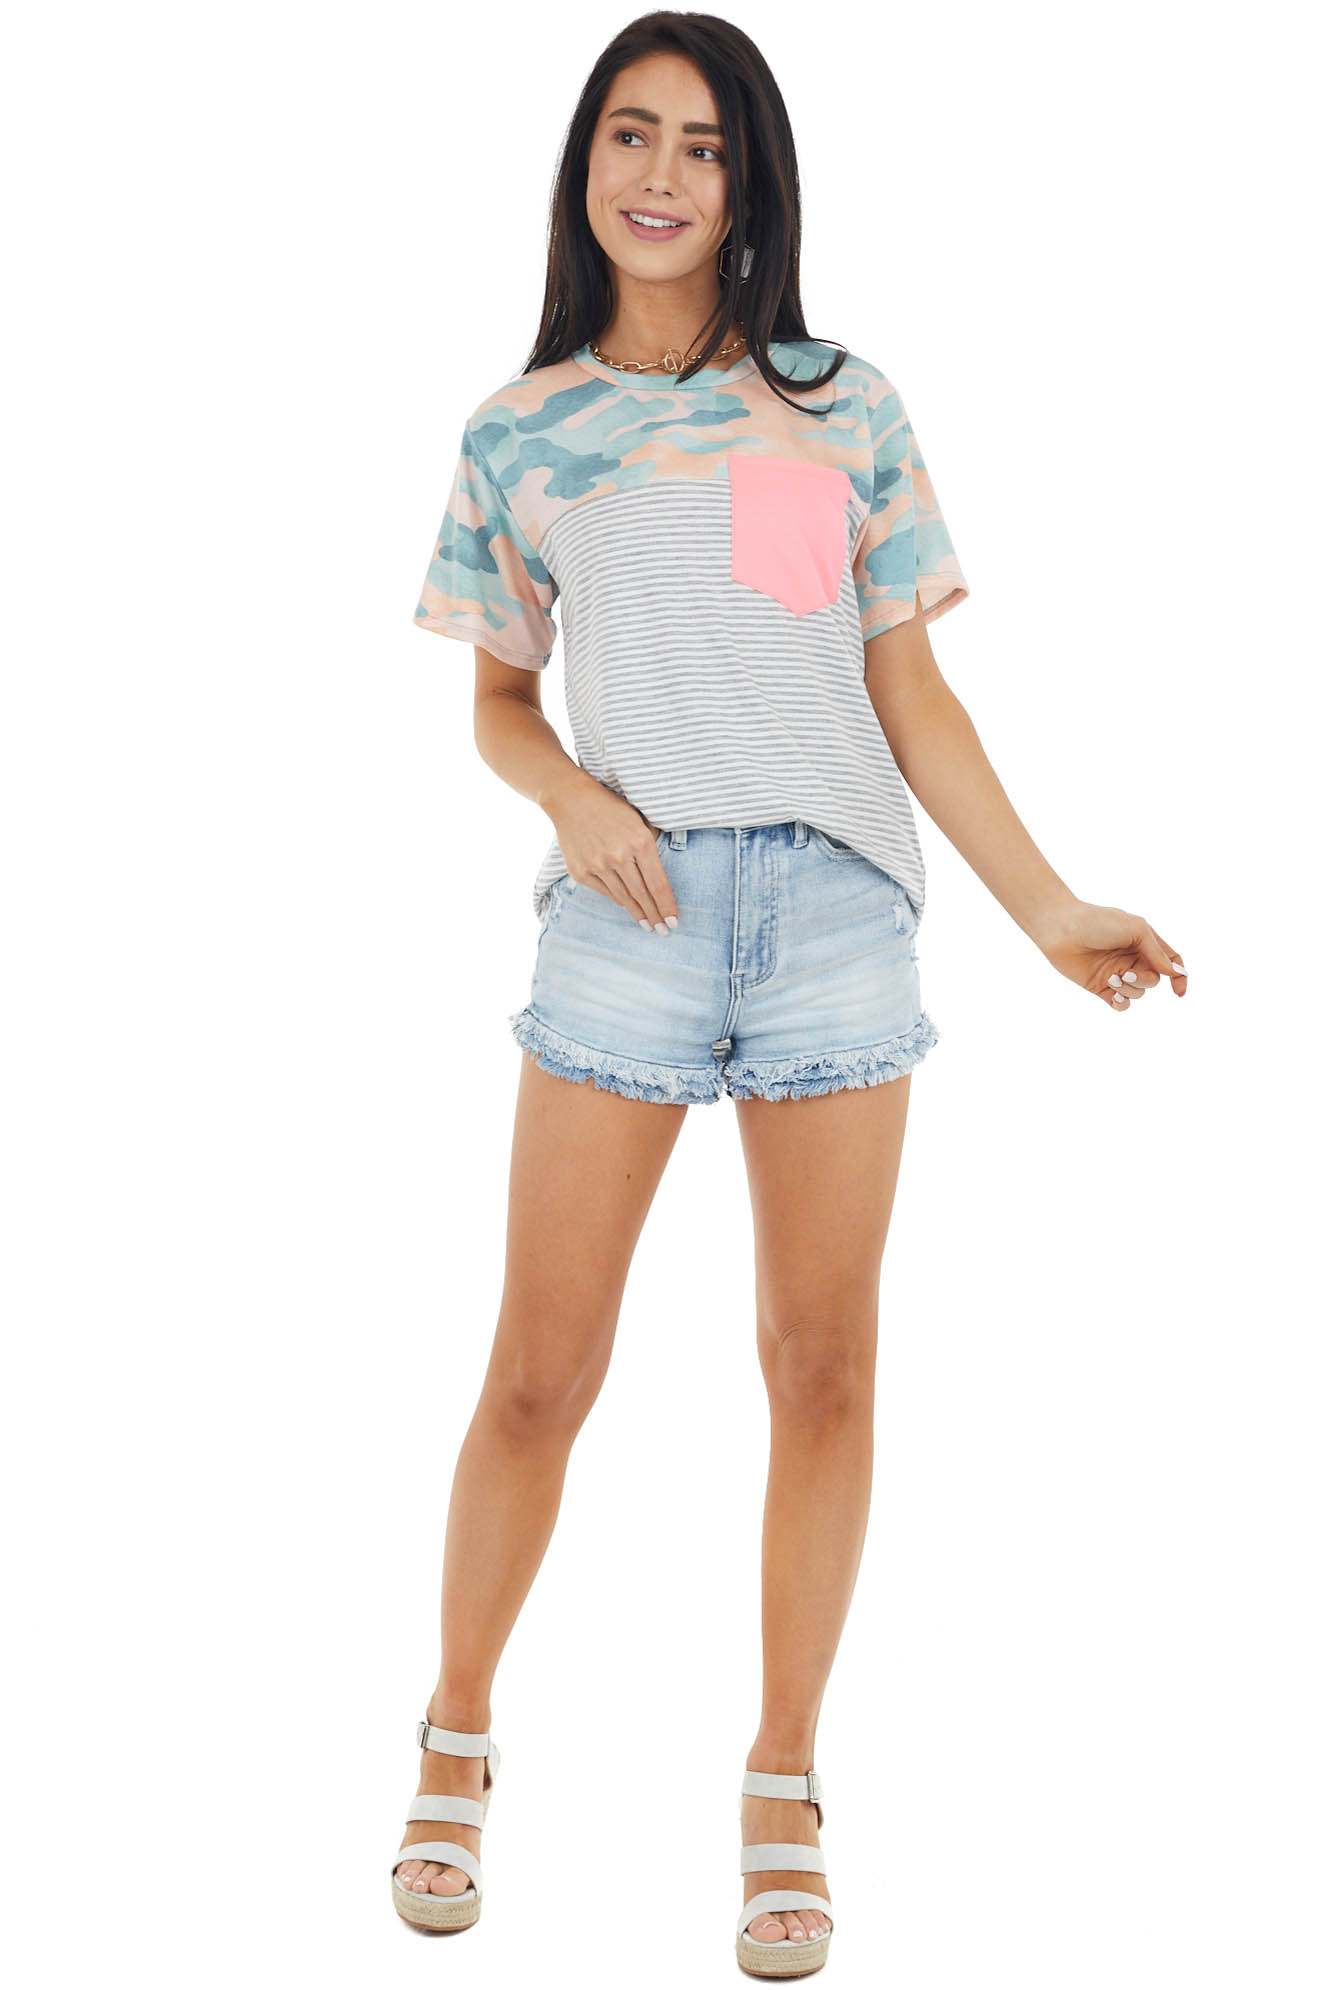 Sage Contrasting Print Short Sleeve Top with Pocket